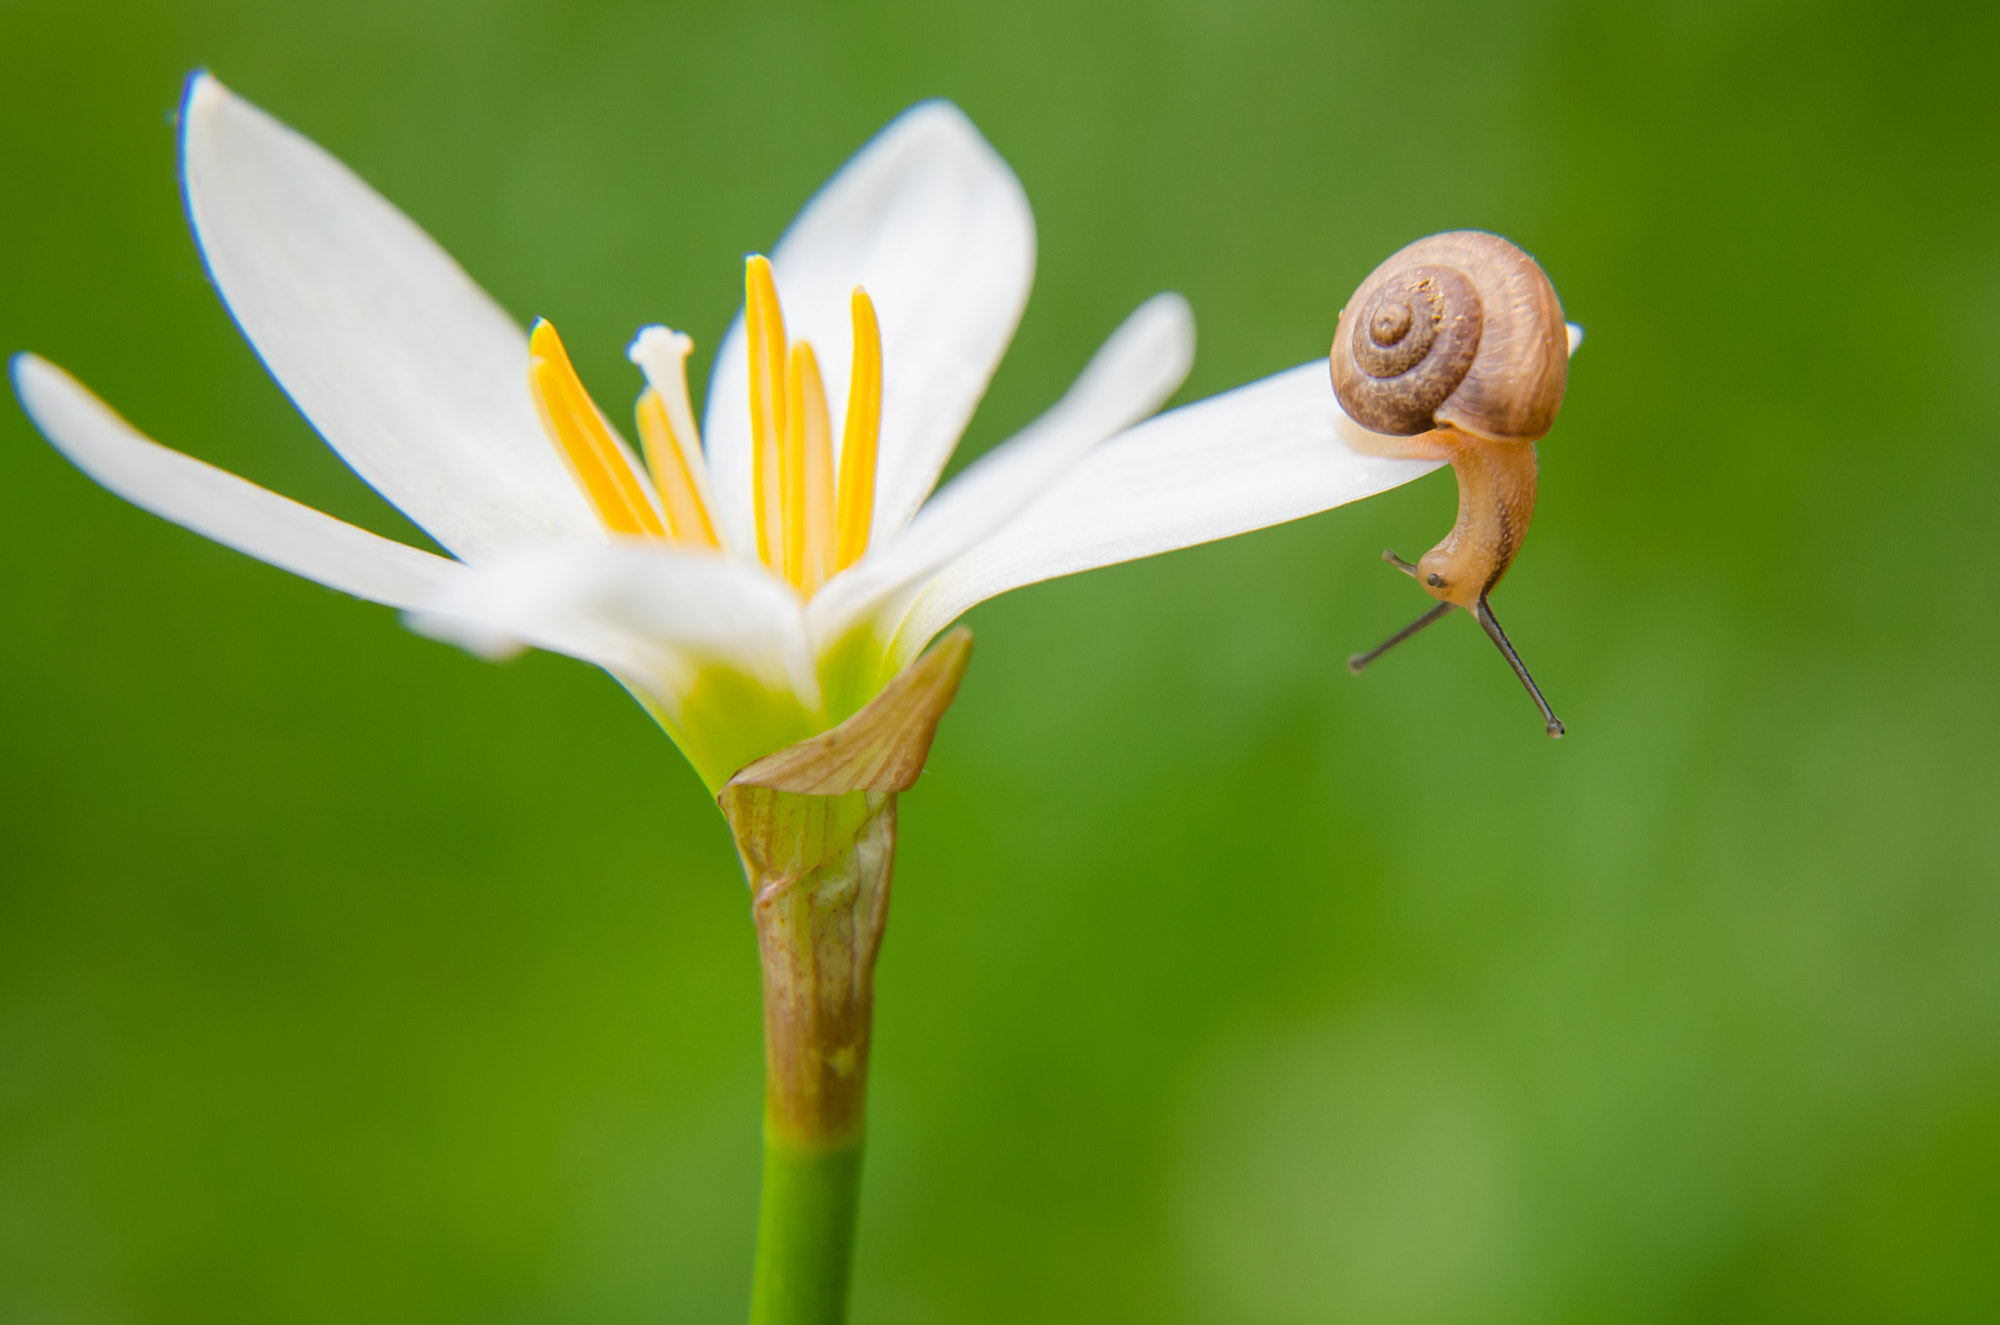 Photograph Snail by Mariana Ito on 500px